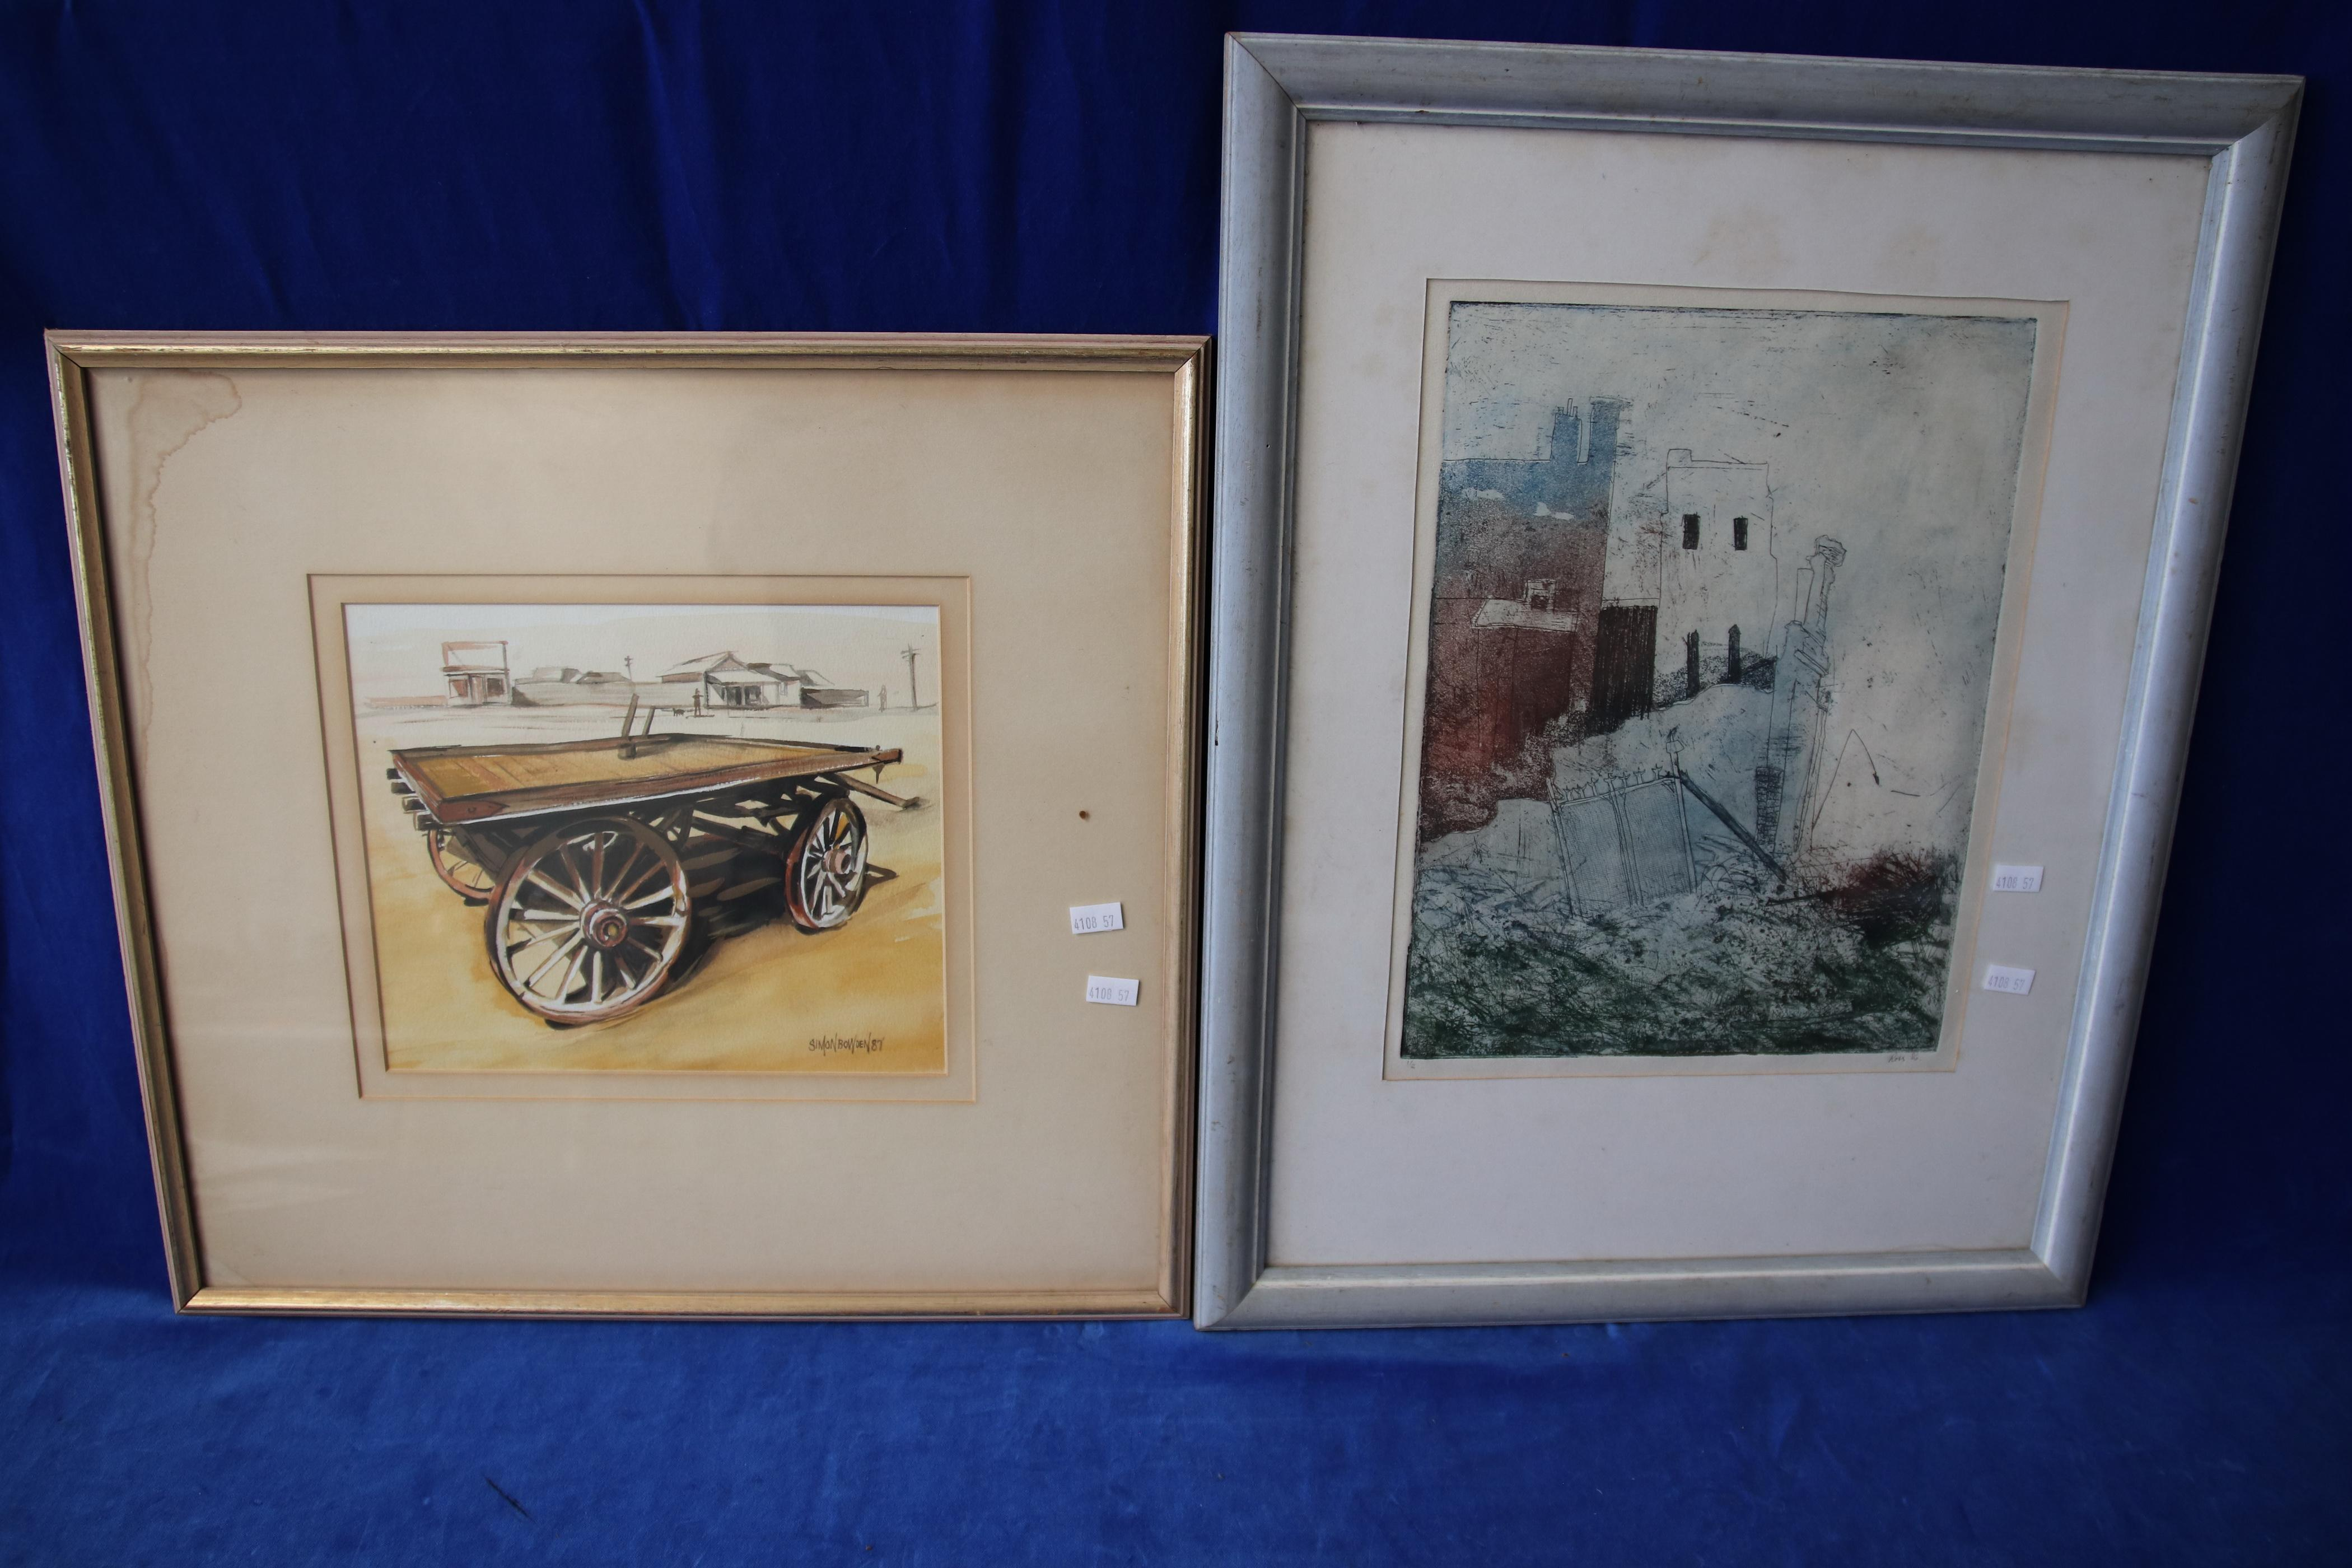 2 FRAMED SIGNED WATERCOLOURS - SIMON BOWDEN 87 AND ROSS 86